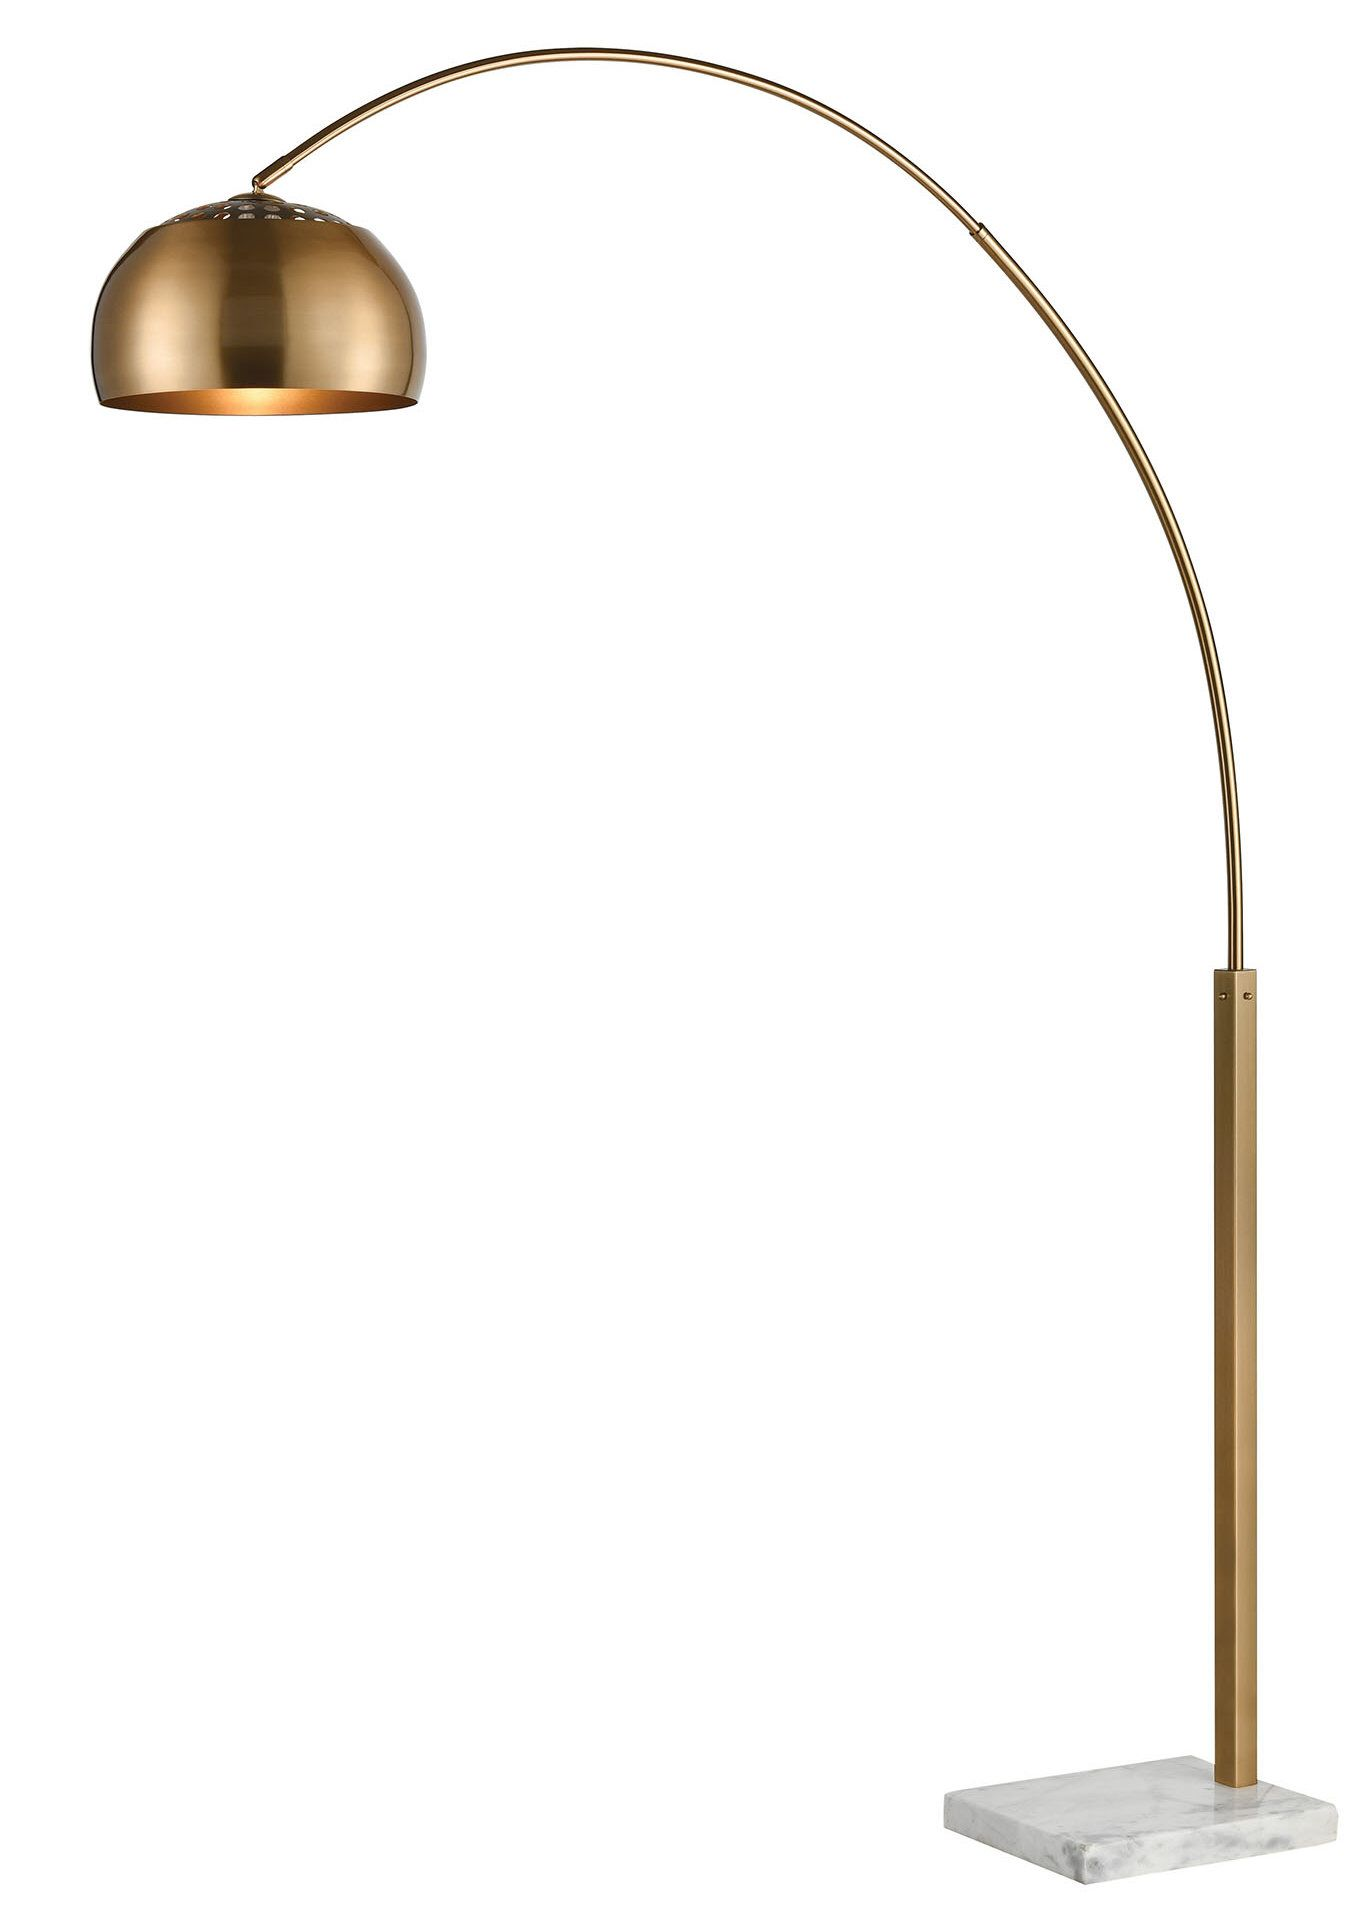 Sprague 77 Arched Floor Lamp Arched Floor Lamp Curved Floor